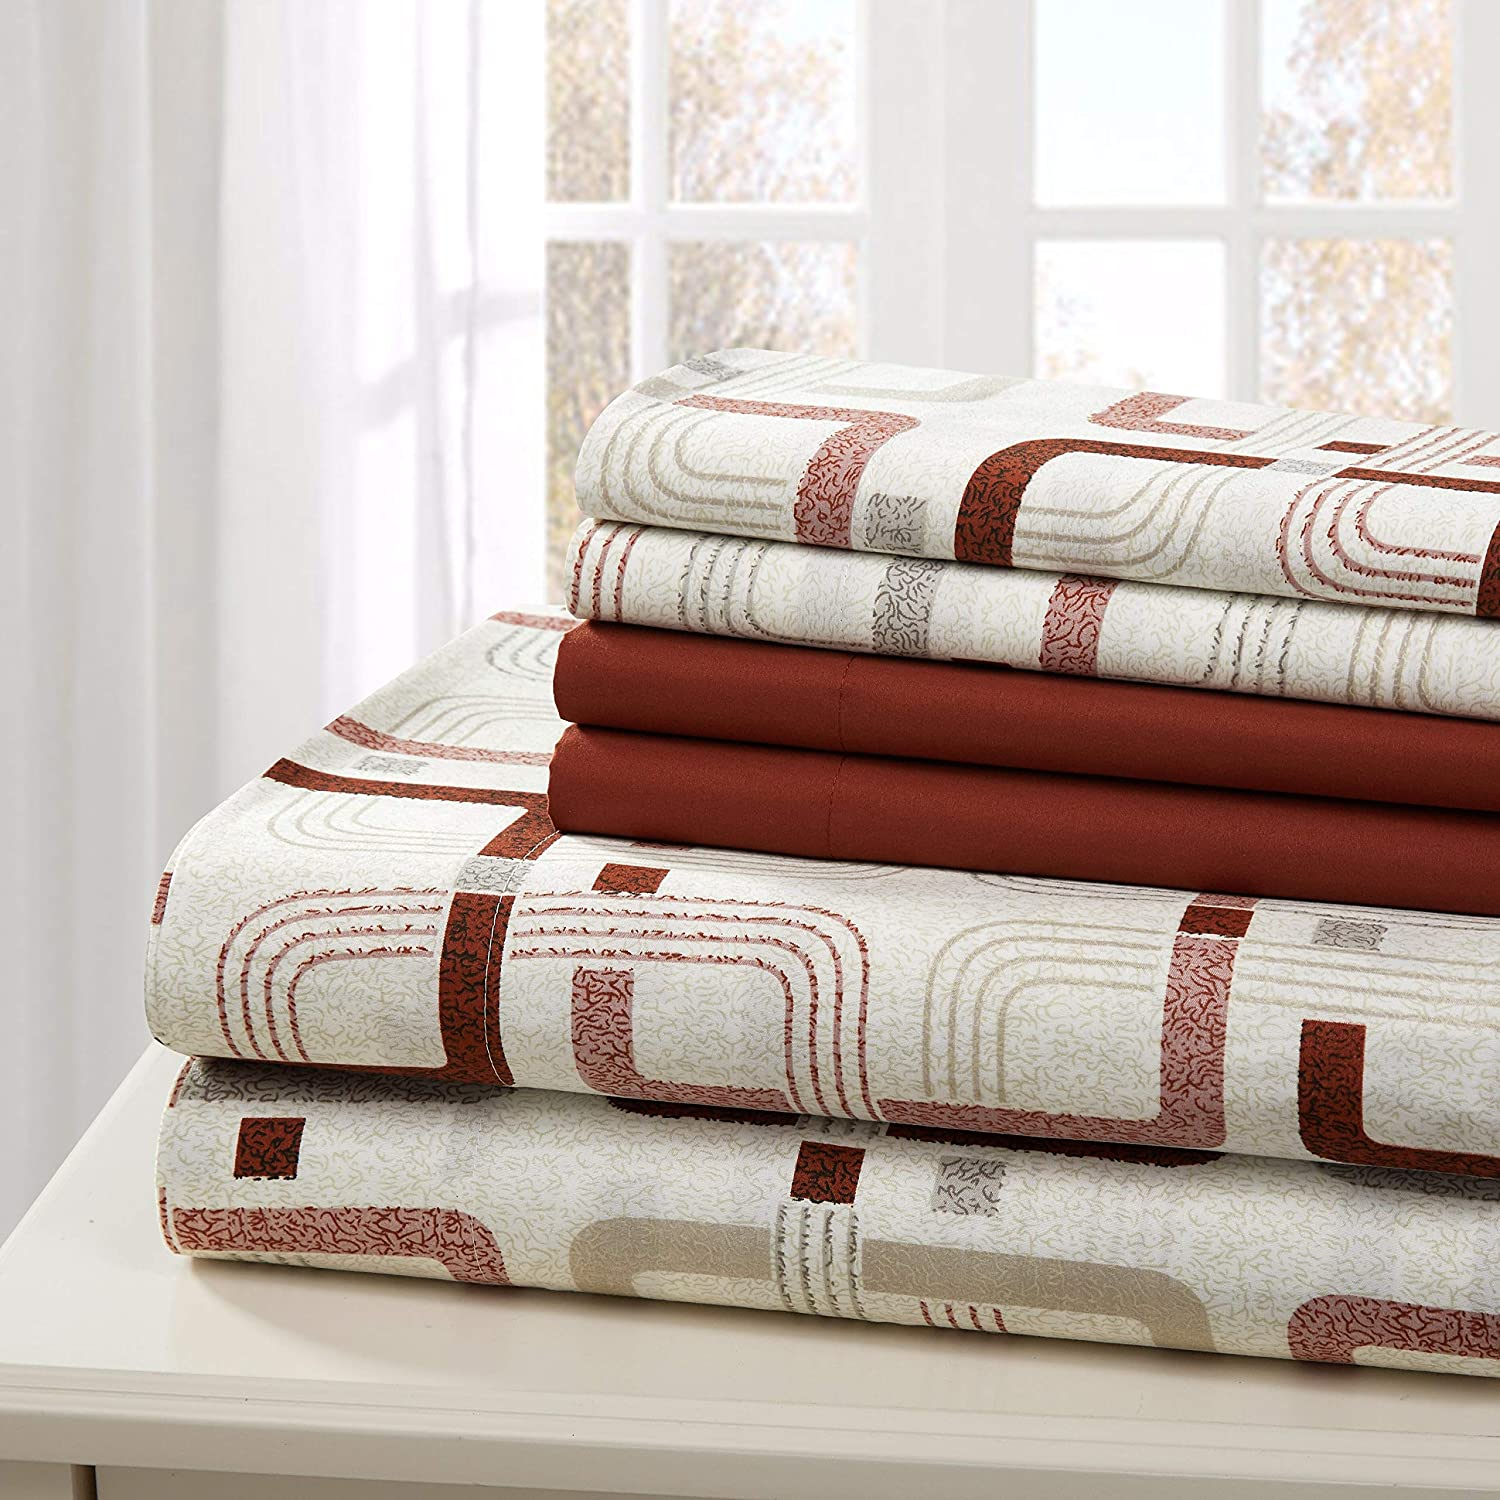 Traditional Home Sheet Set Cotton Percale 6 Piece Print Twin Full Queen King Soft (Brown Square, Queen)